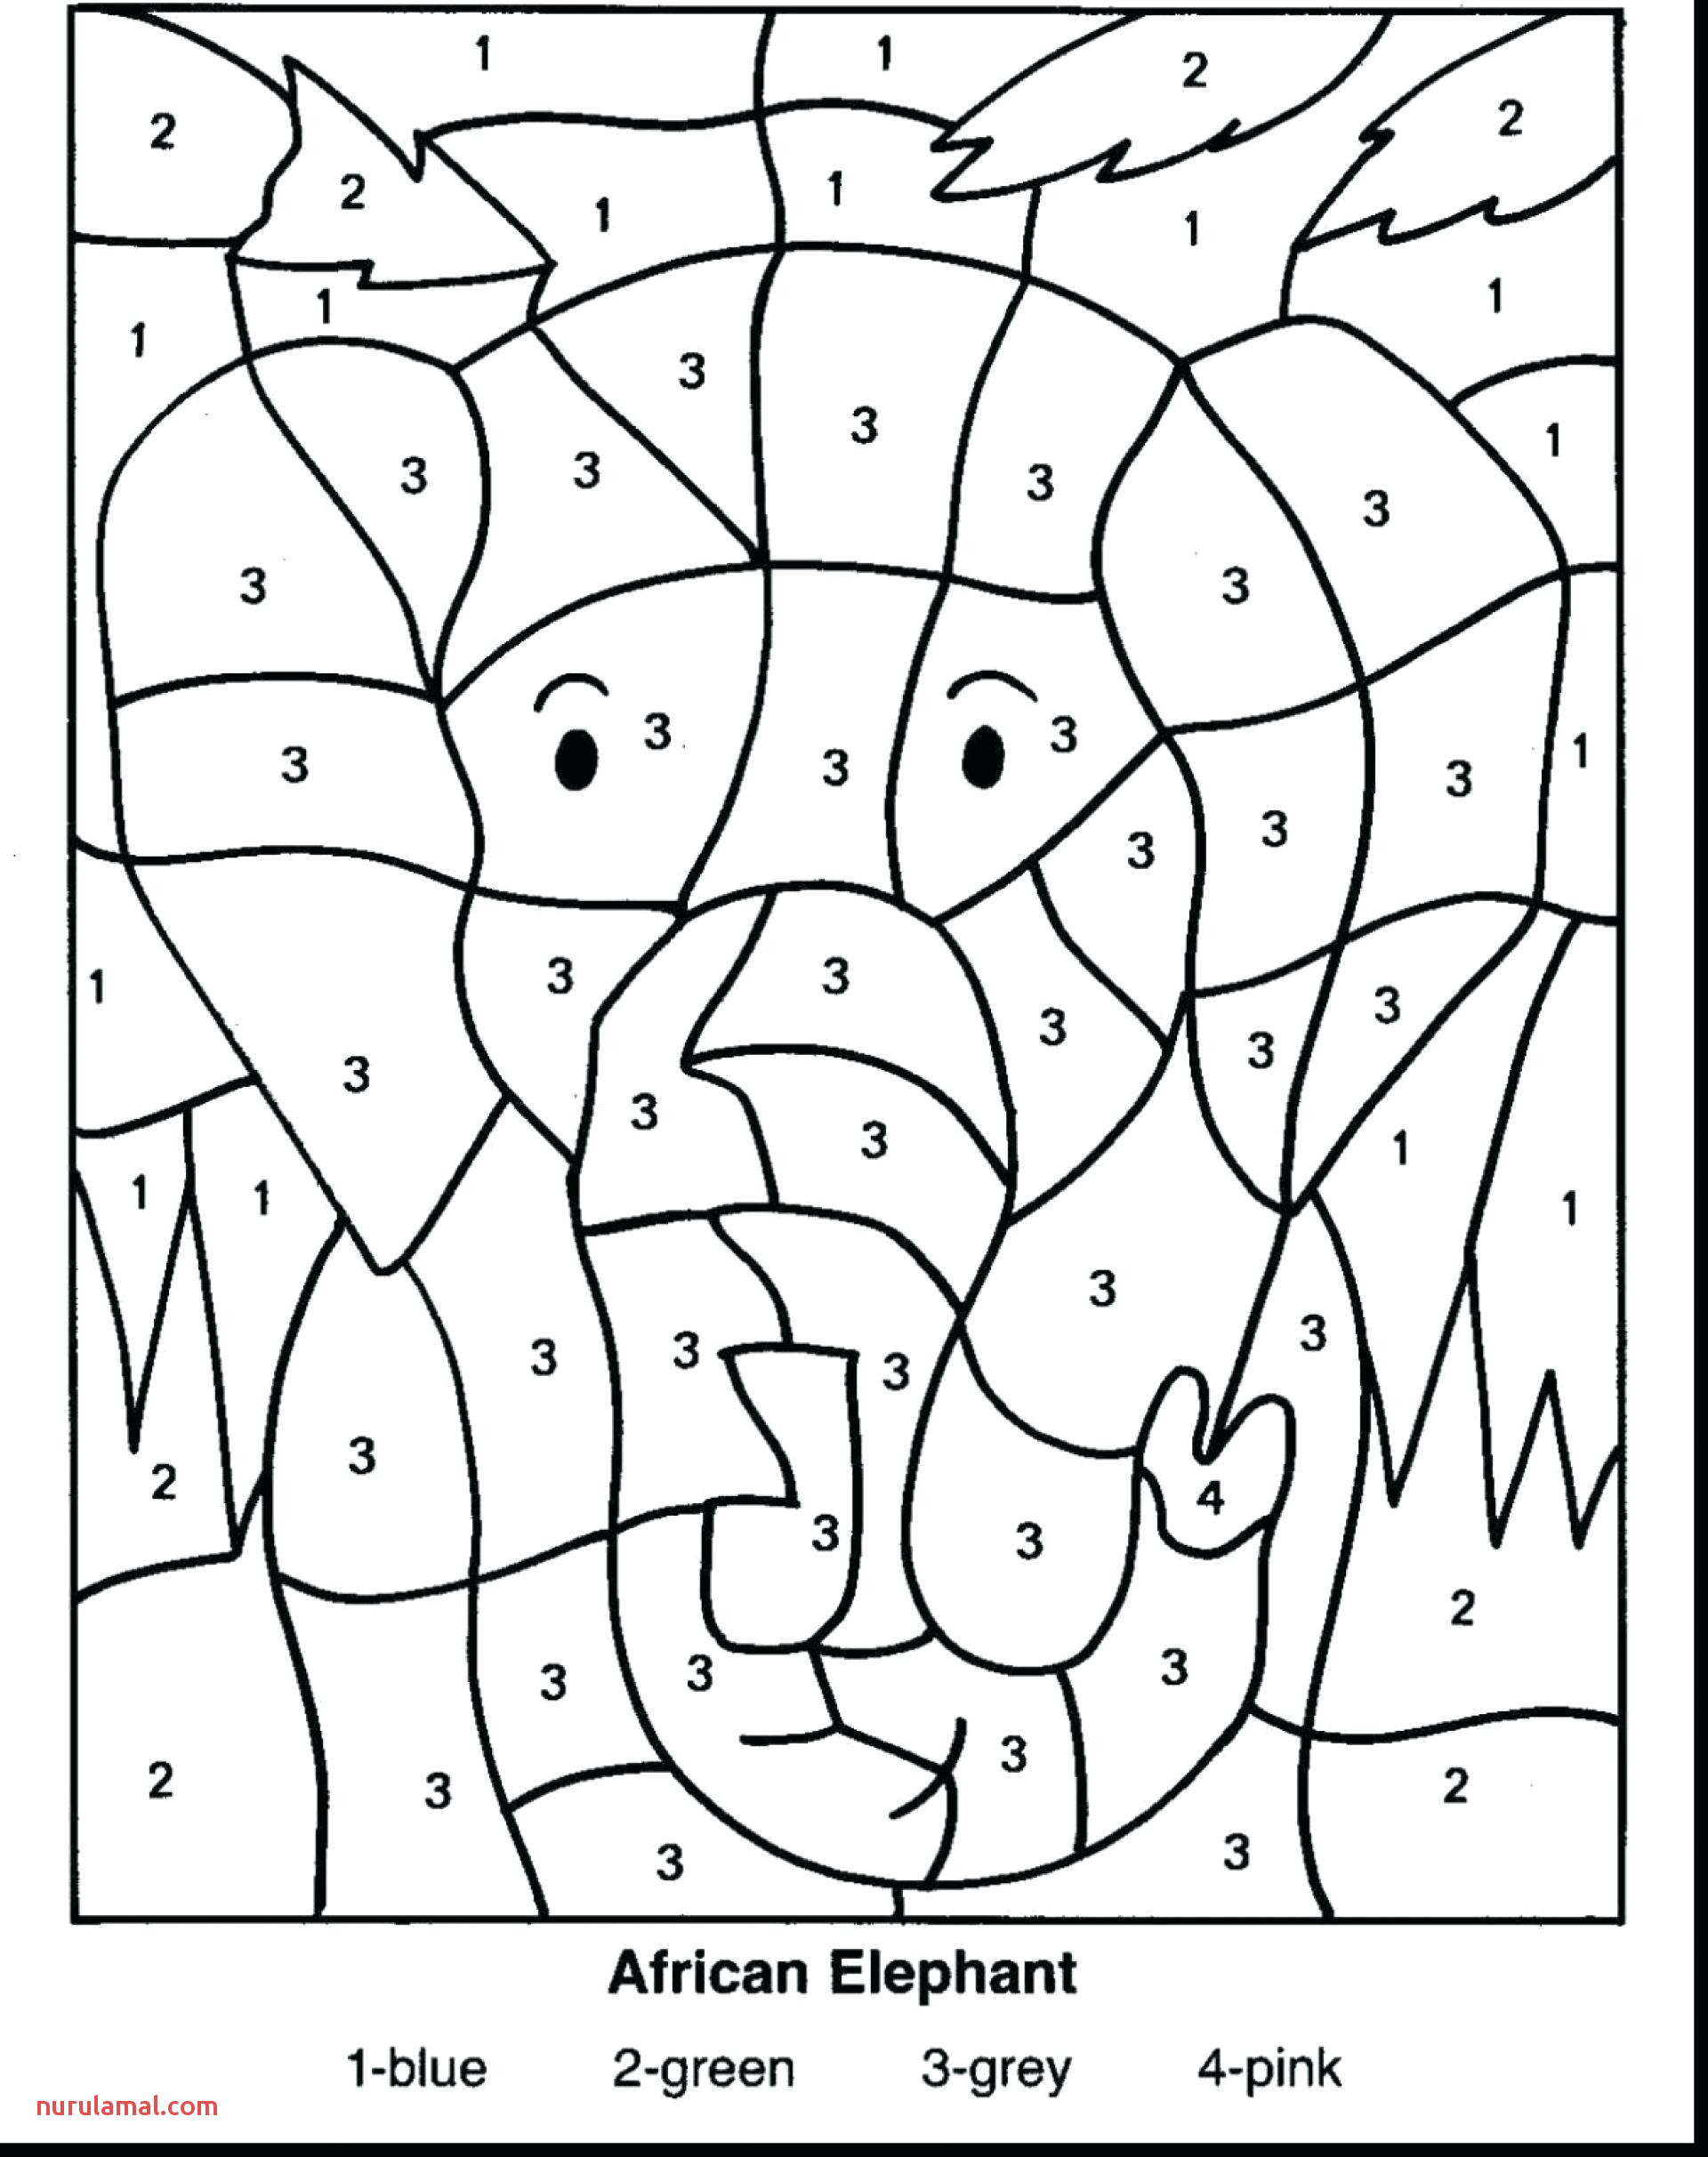 worksheet coloring pages addition eets e2 80 93 micronsheet co math christmas free